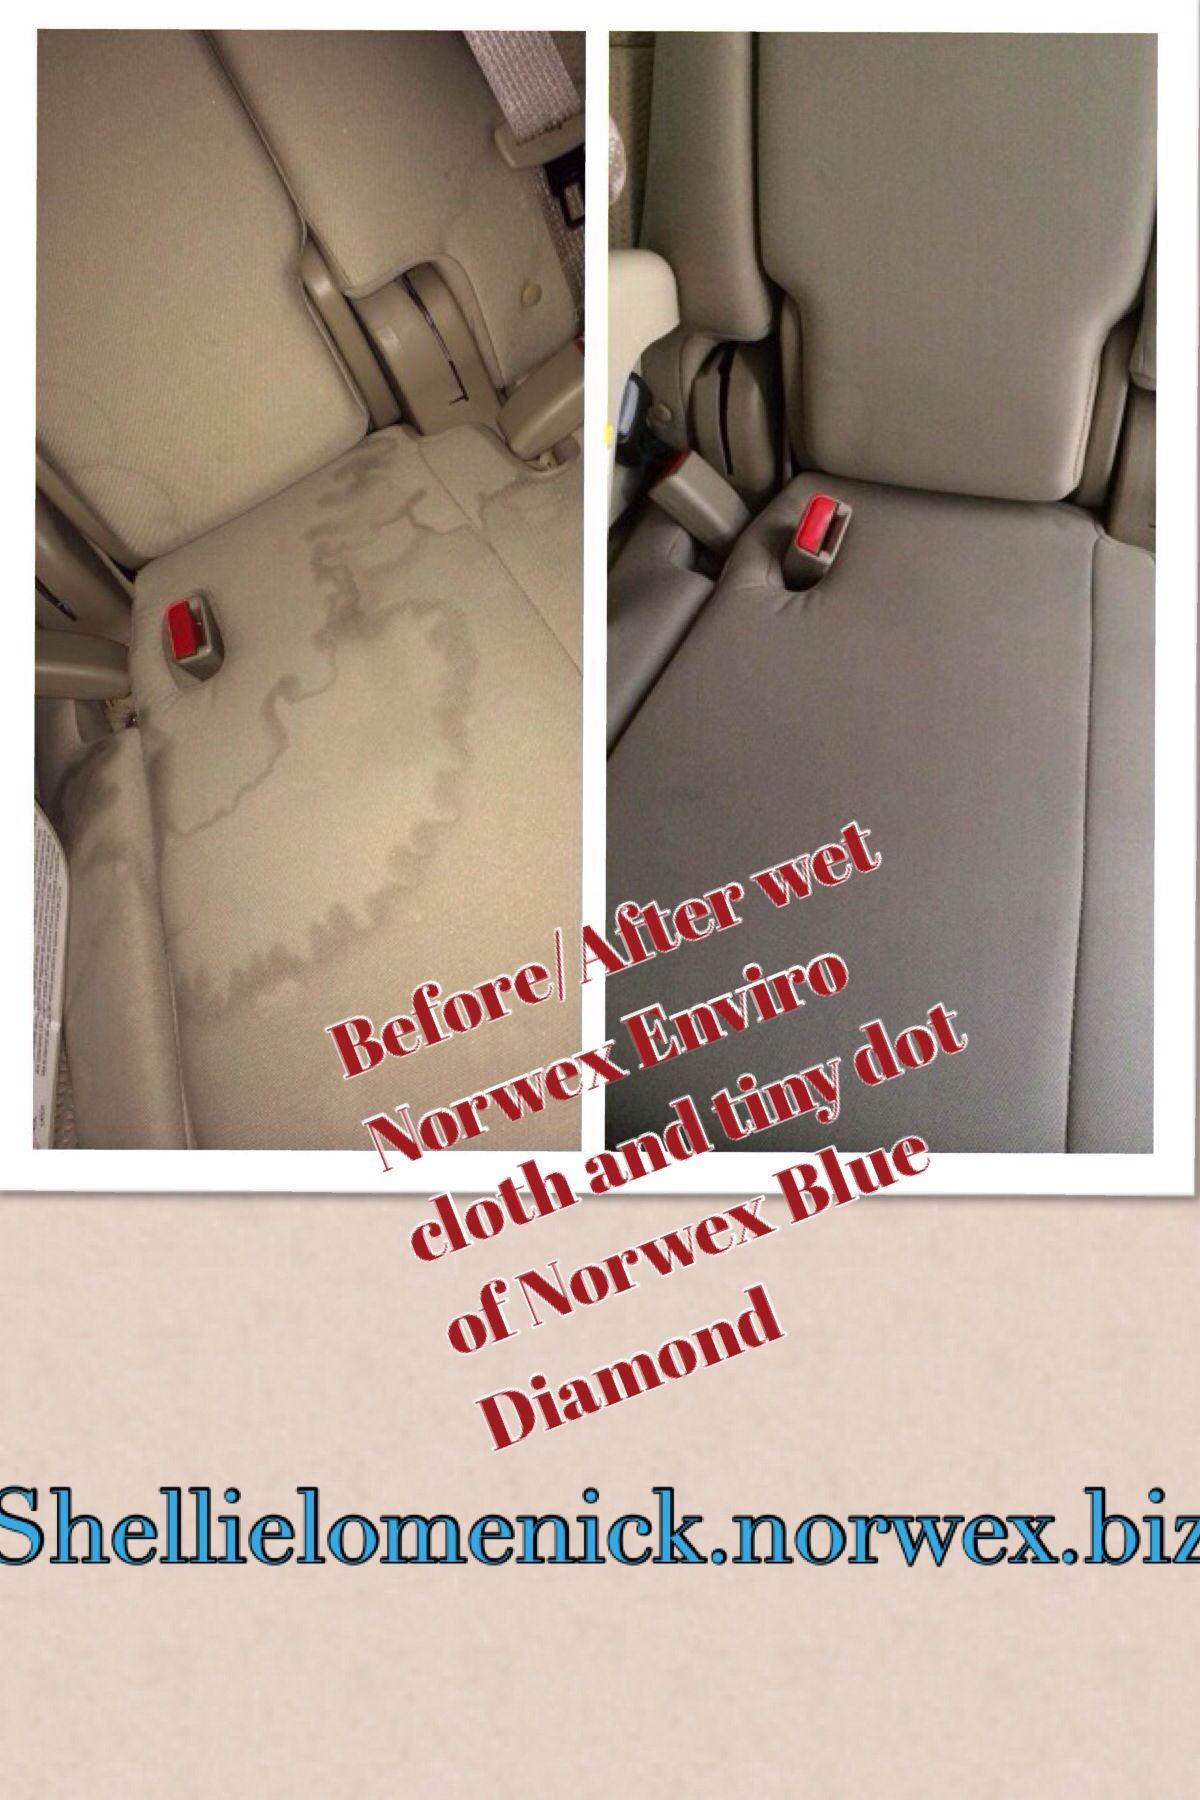 Get rid of stains in your car with water and a norwex